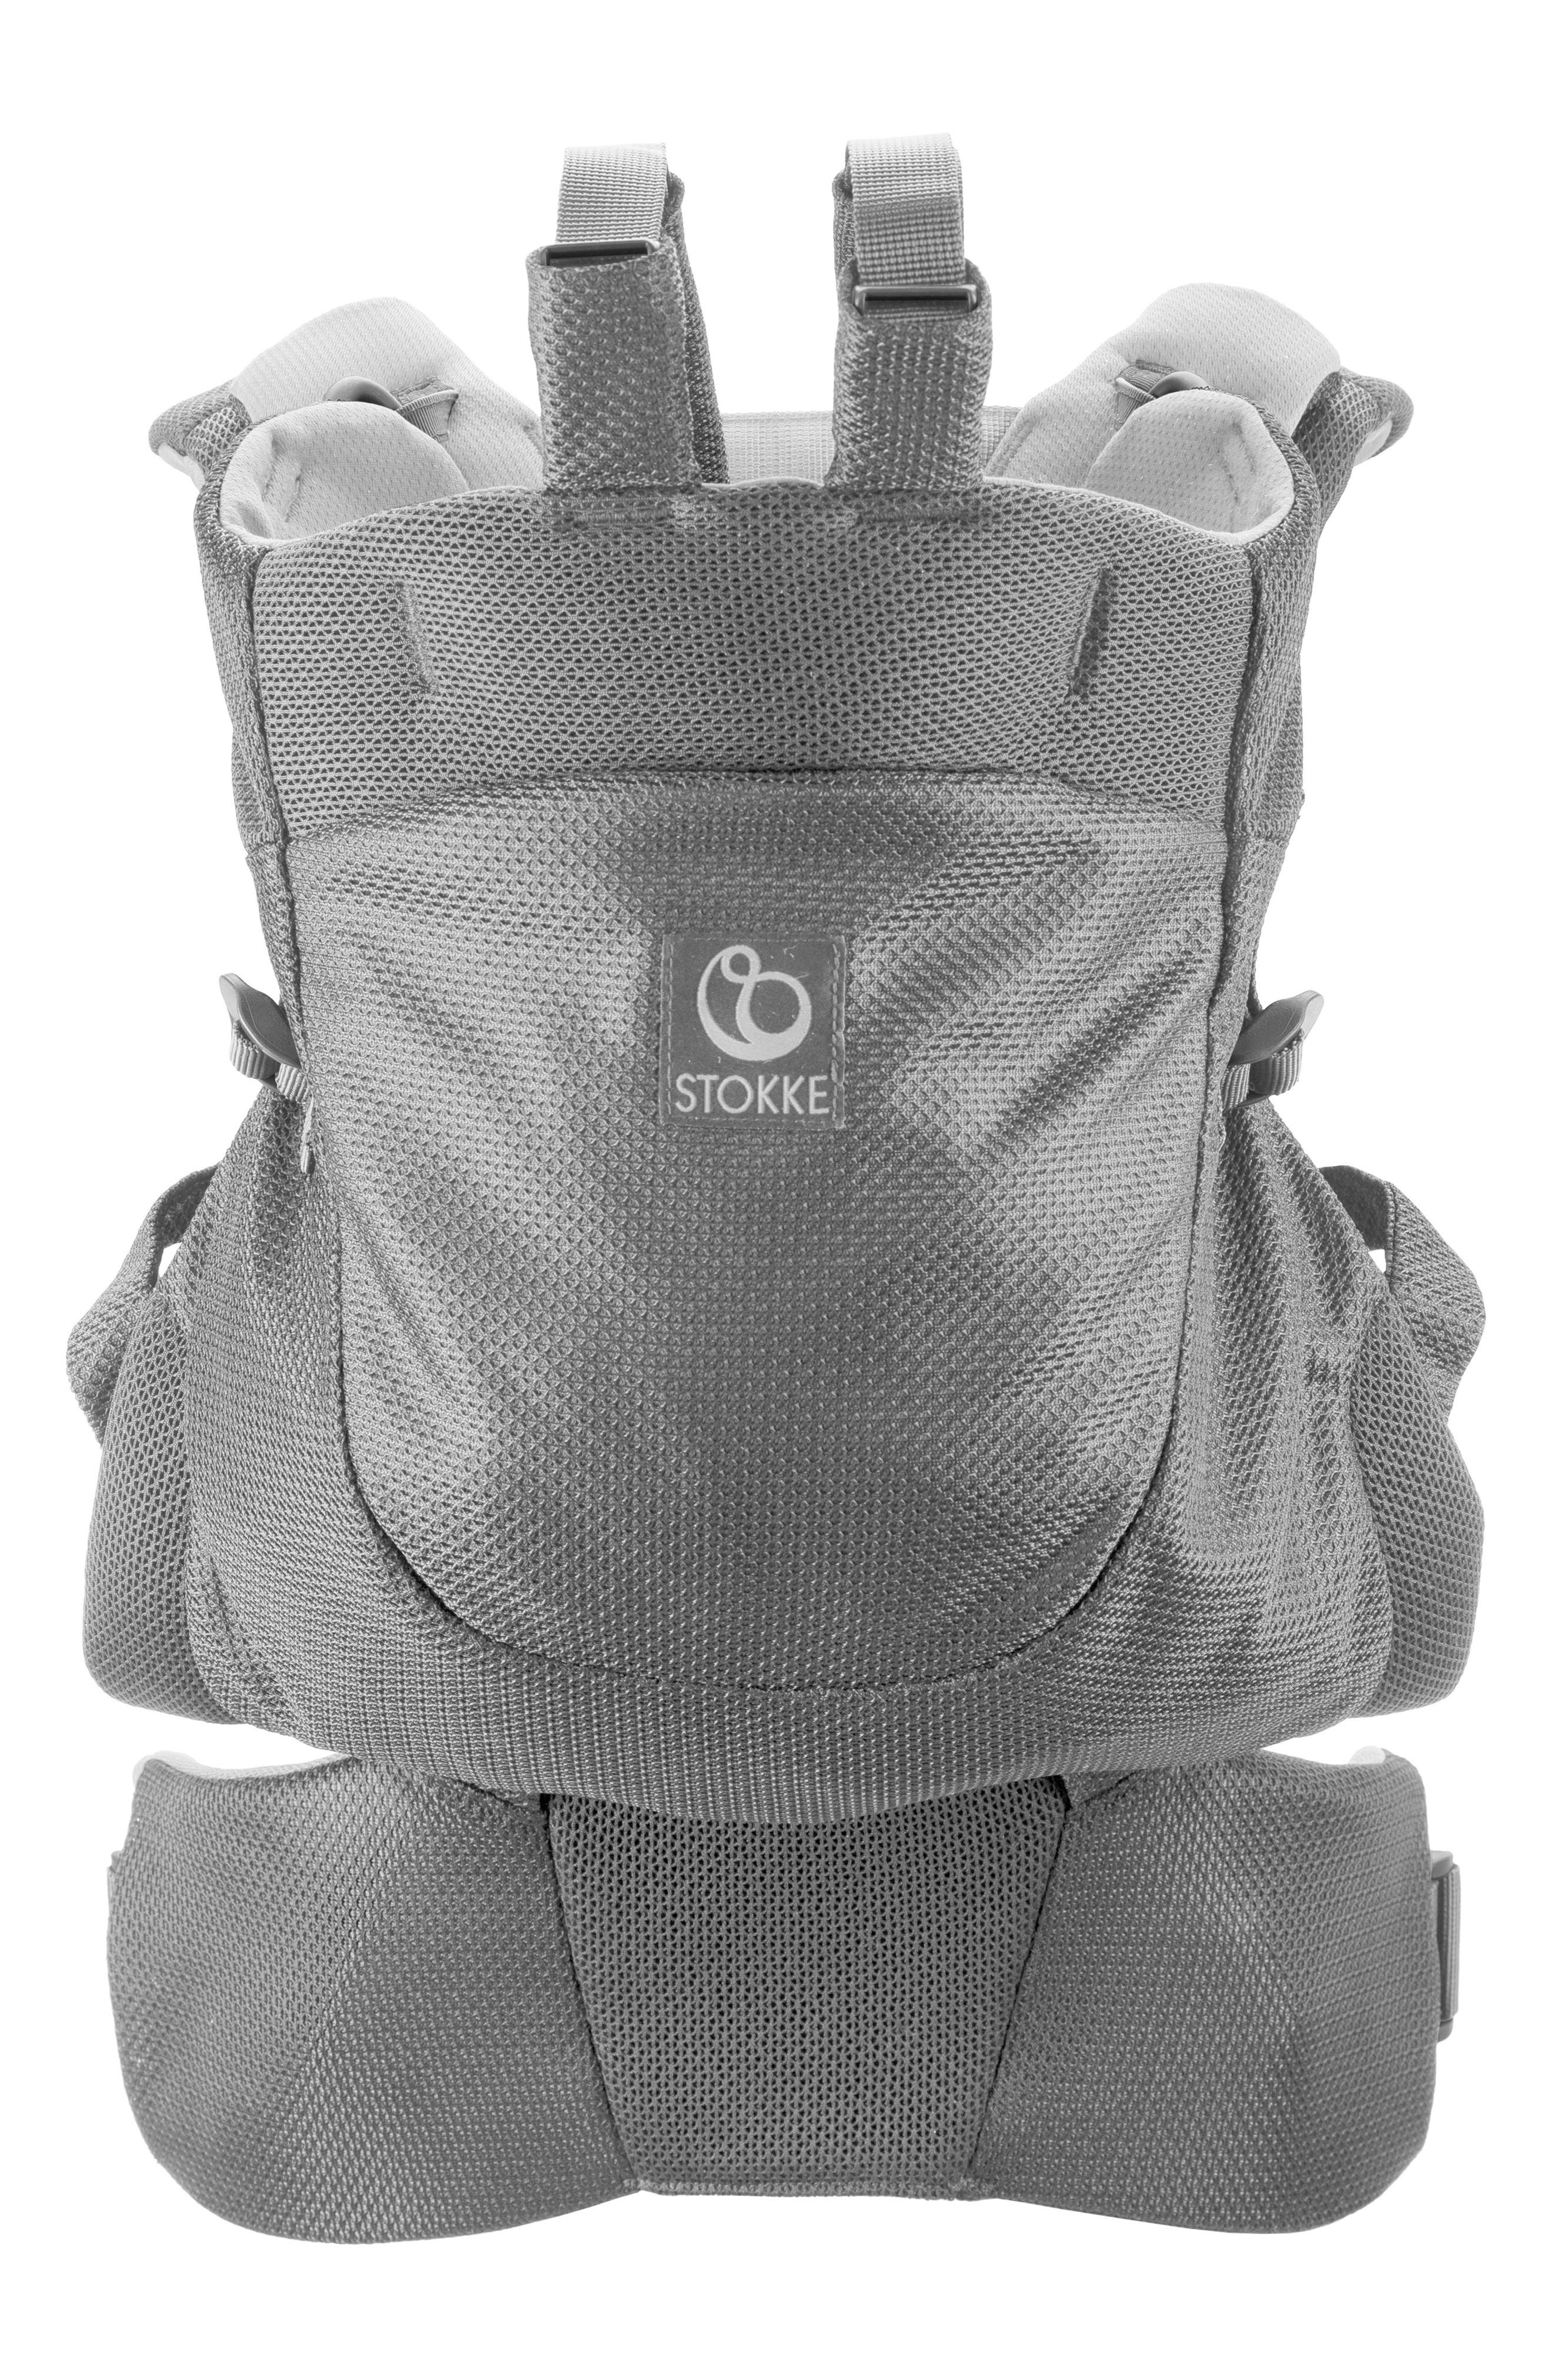 Main Image - Stokke MyCarrier™ Front Baby Carrier